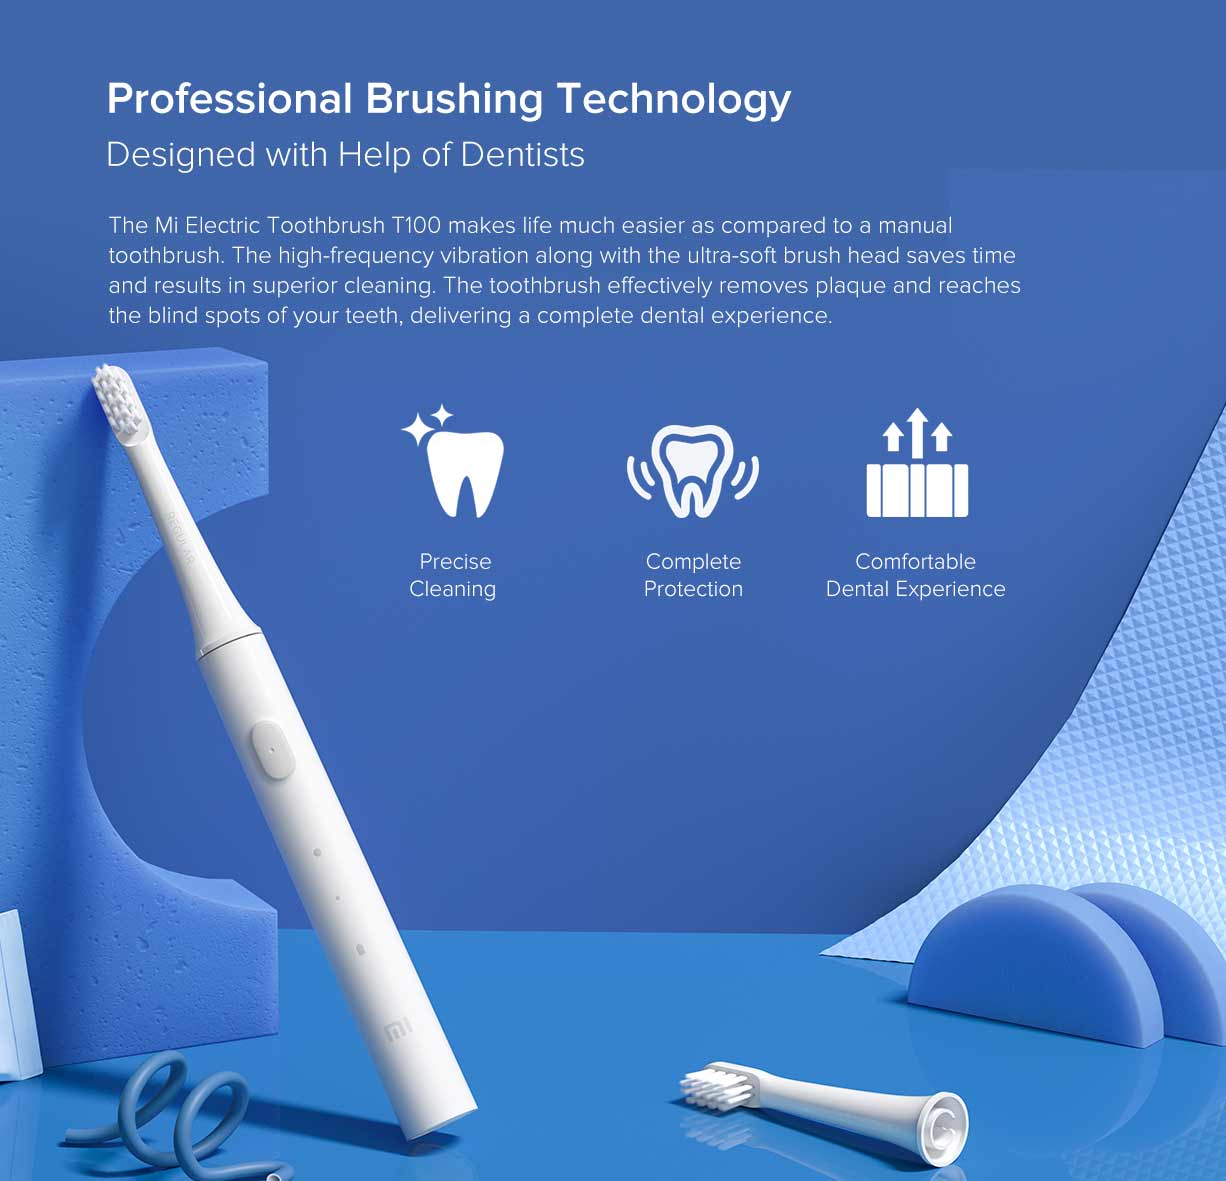 mi-electric-toothbrush-T100-proffessional-brushing-technology